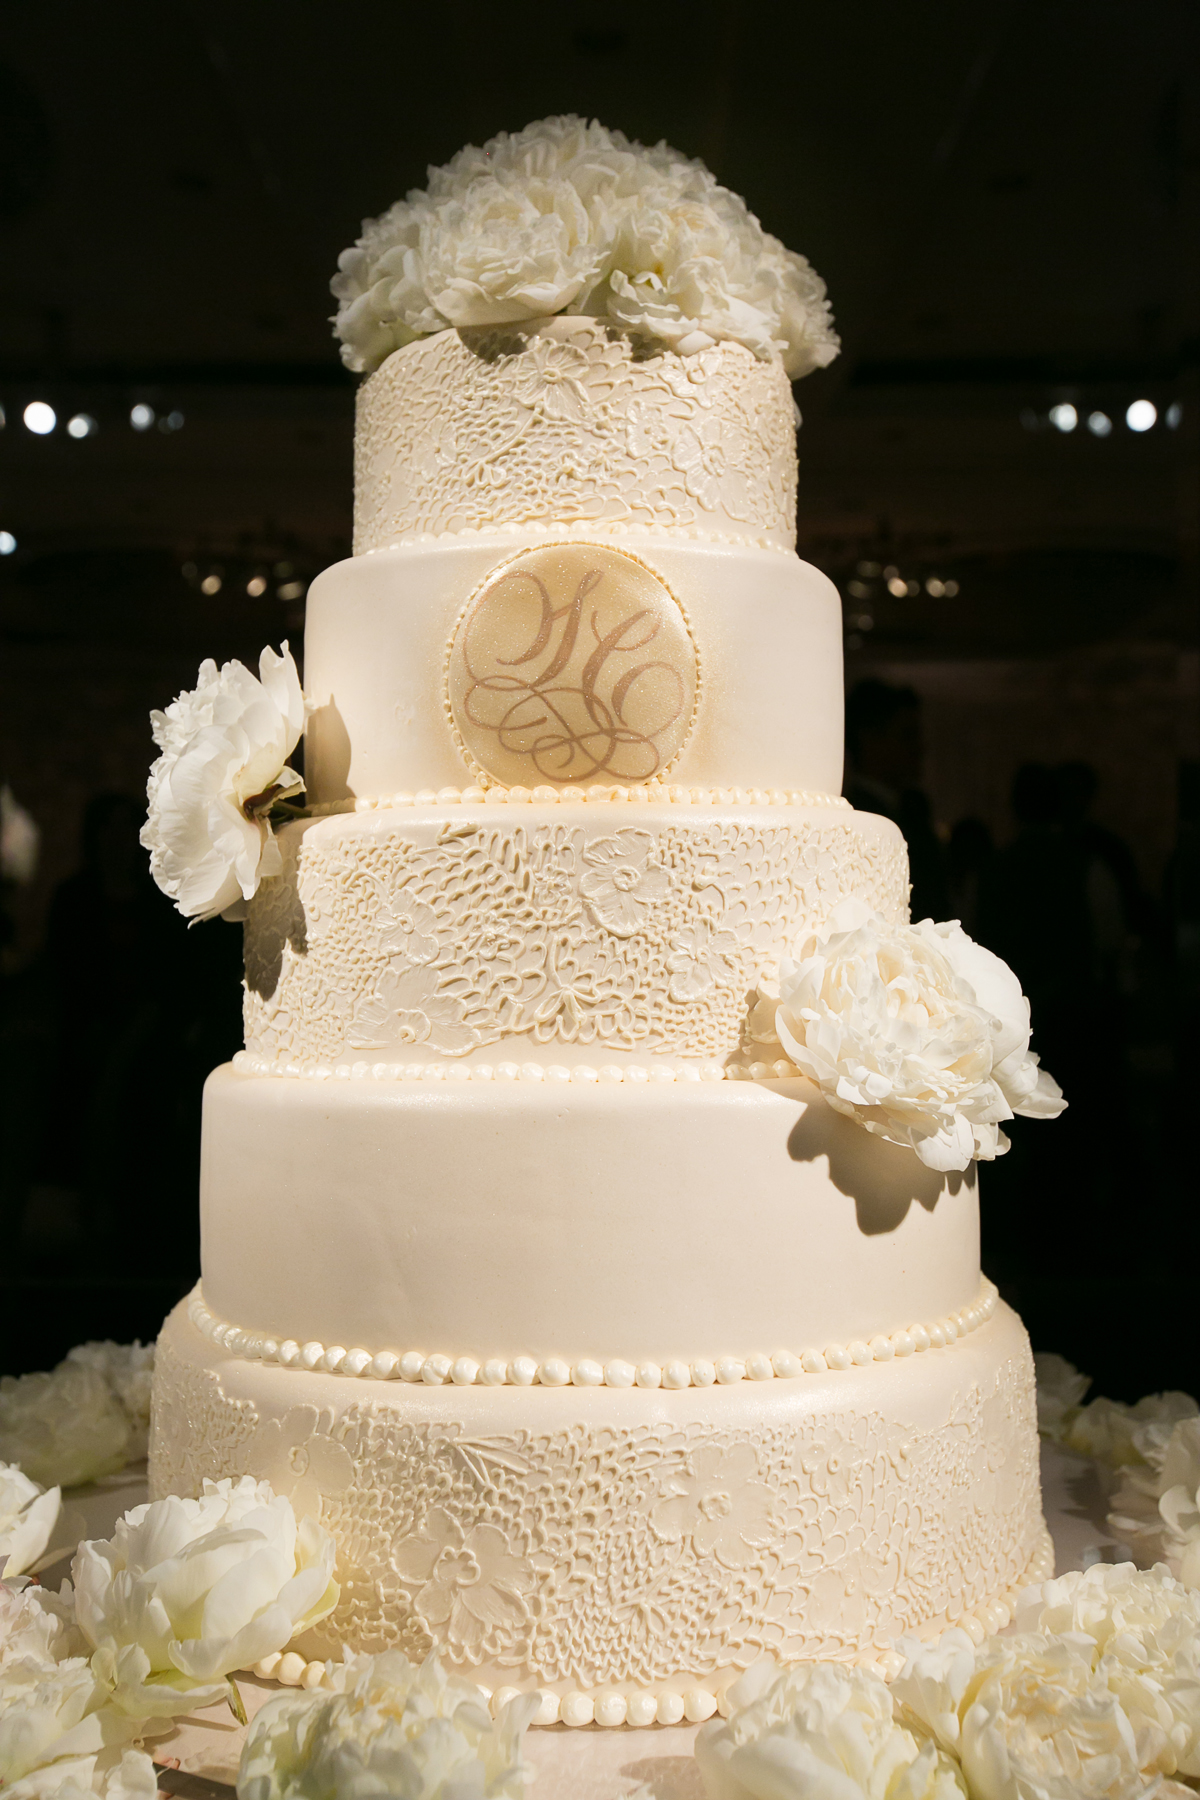 Wedding Cakes Pretty Wedding Confections with Lace